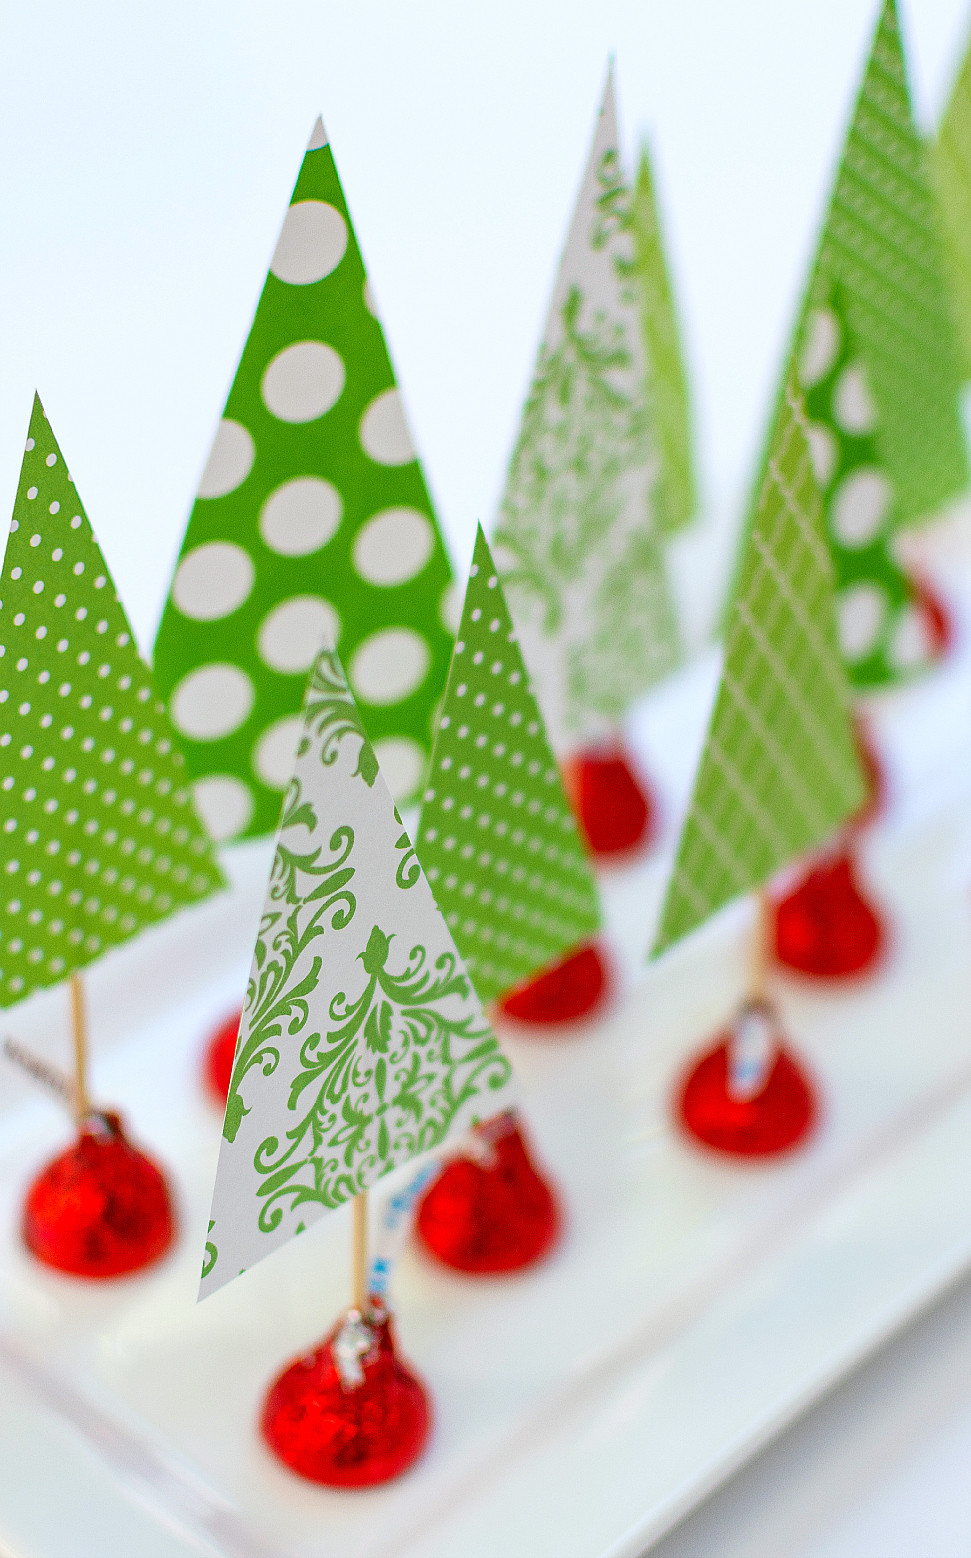 Best ideas about Holiday Craft Idea For Kids . Save or Pin Christmas Crafts with Kids Now.